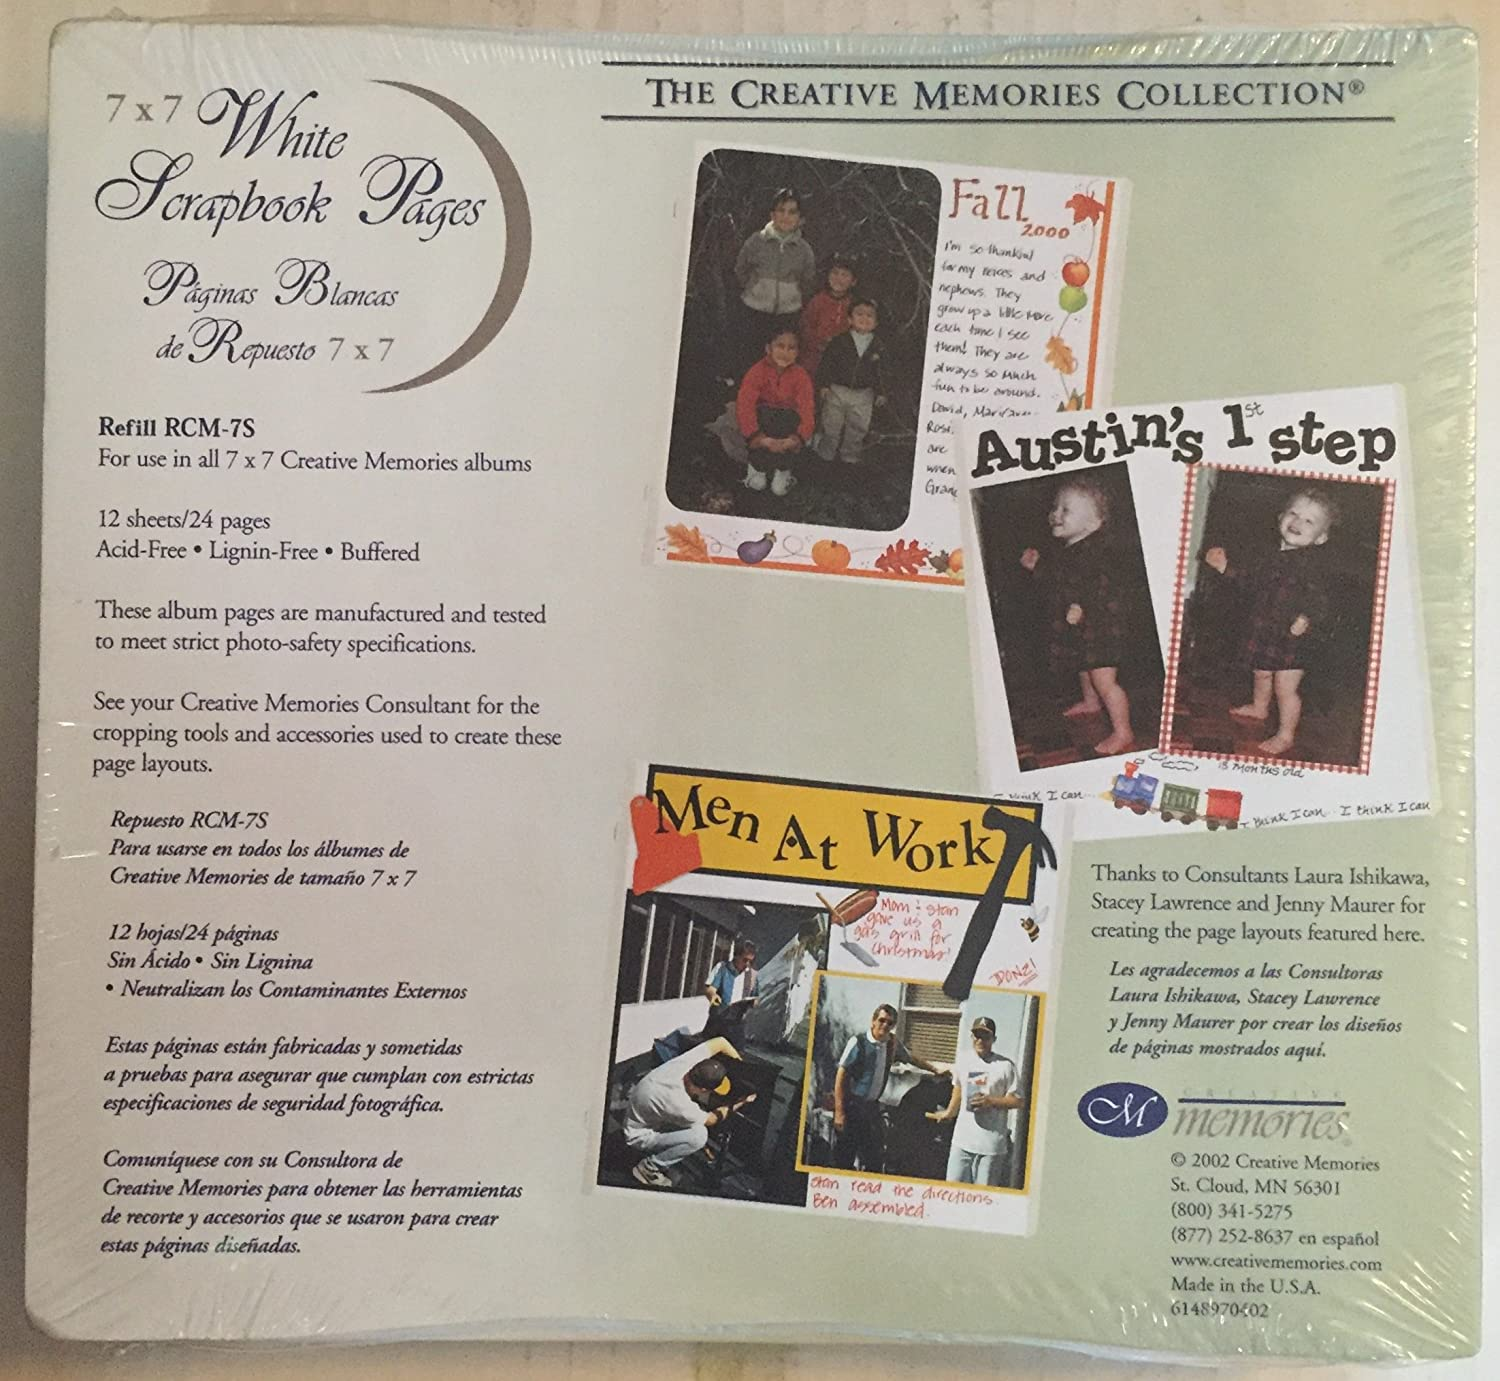 The creative memories 7 x 7 scrapbook pages